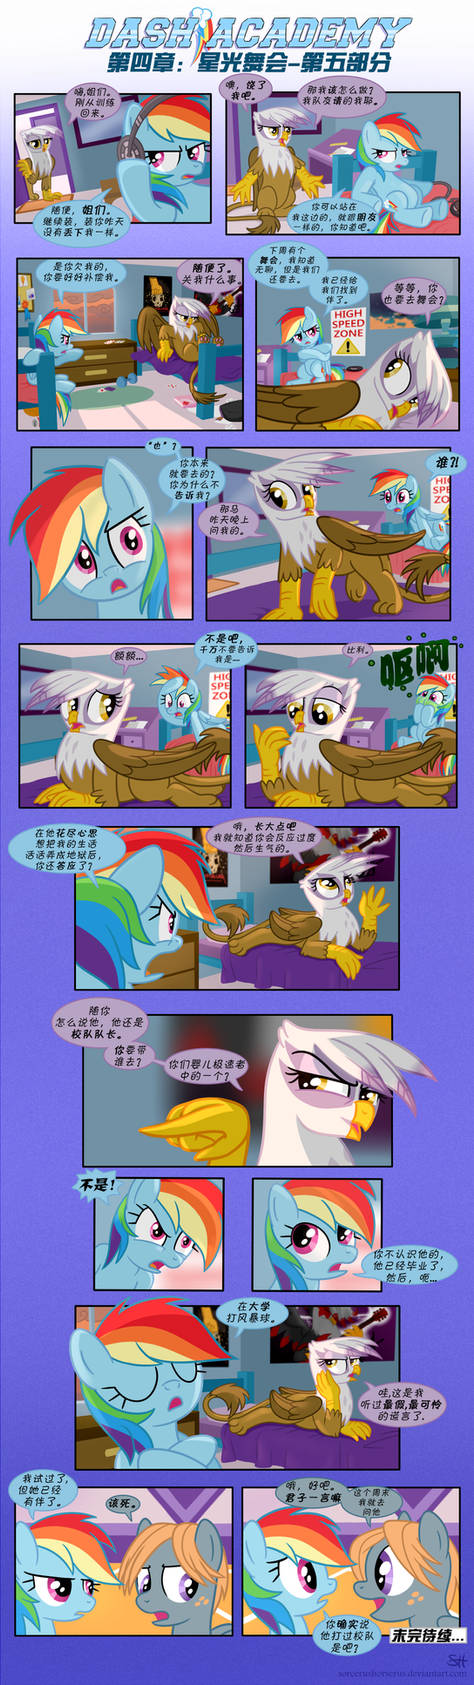 Dash Academy Chapter4 part5 (Chinese)